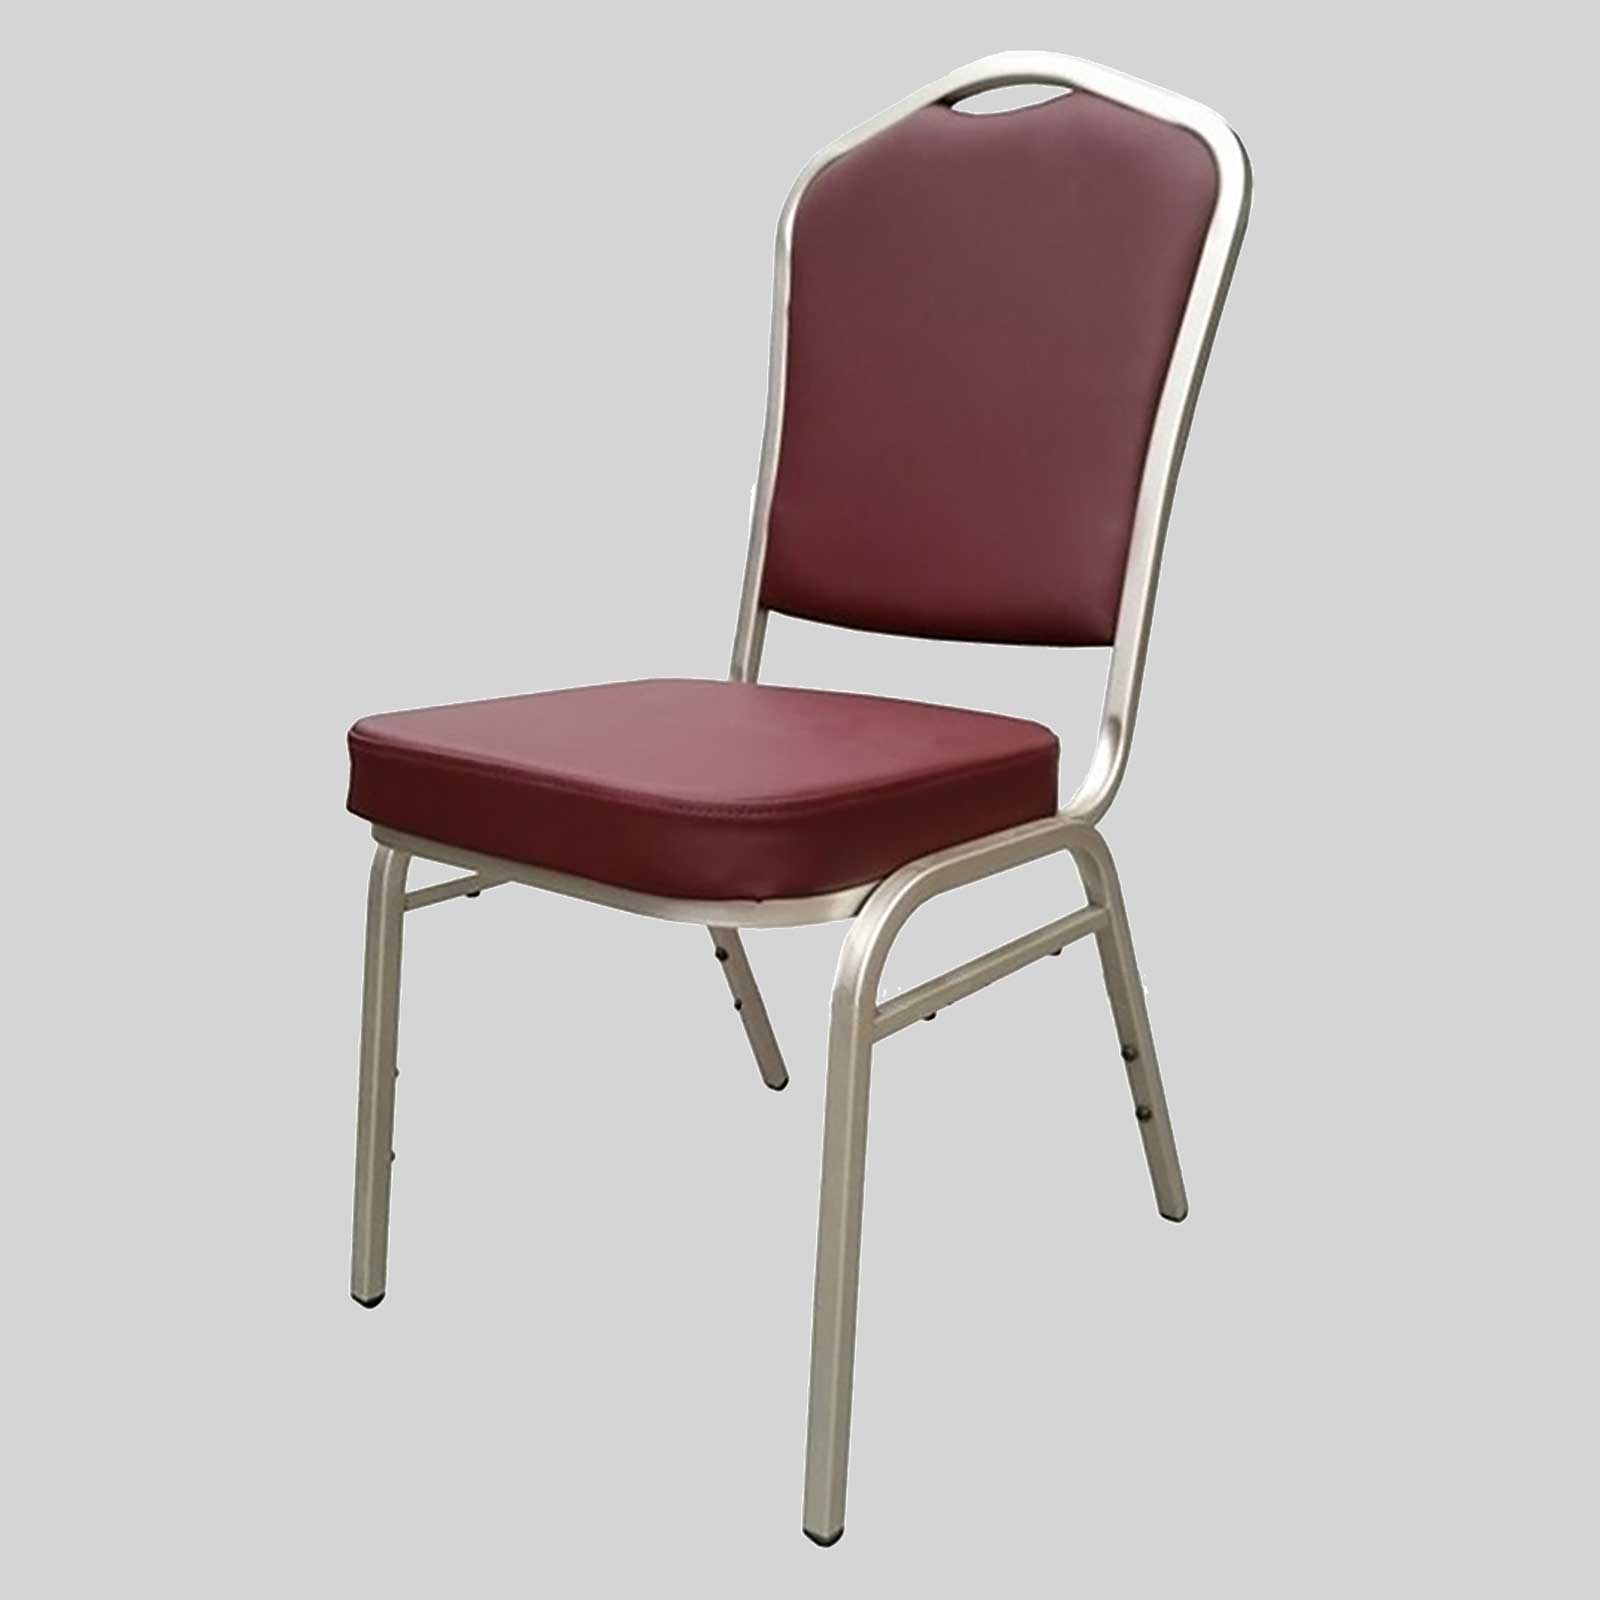 Banquet Chairs For Commercial Use Bradman Concept